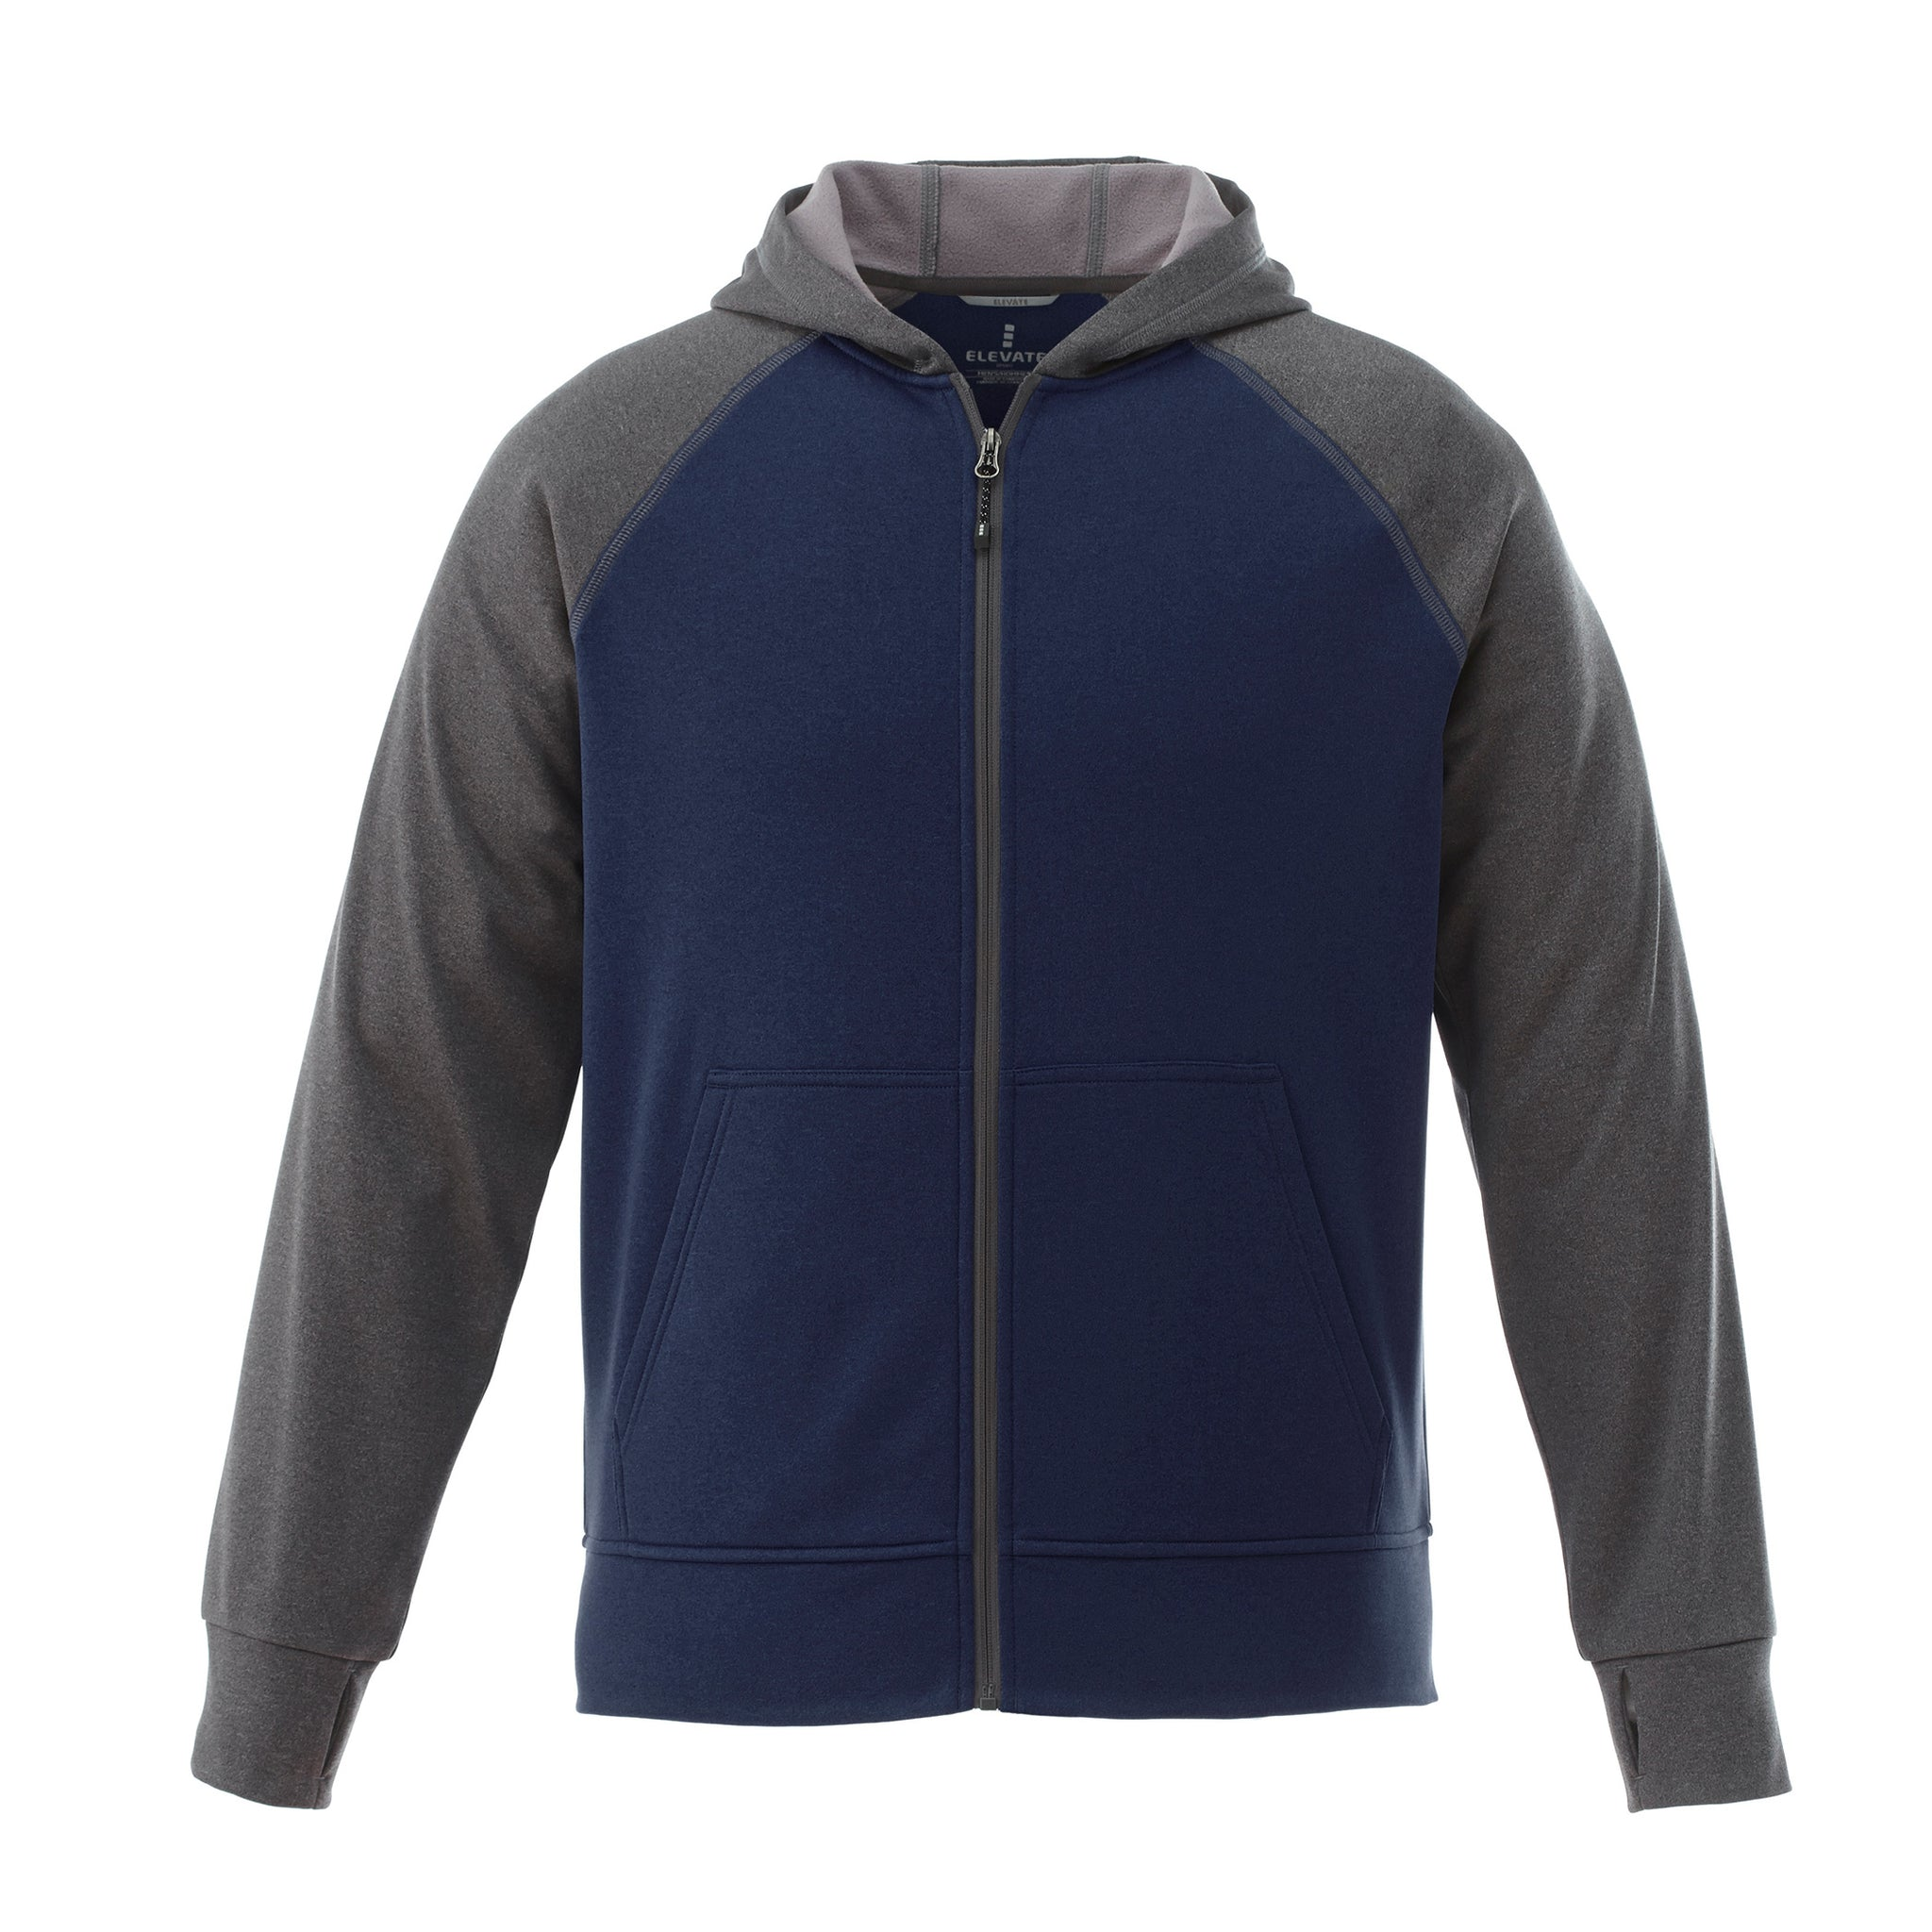 ELEVATE MEN'S ANSHI KNIT FULL ZIP HOODIE